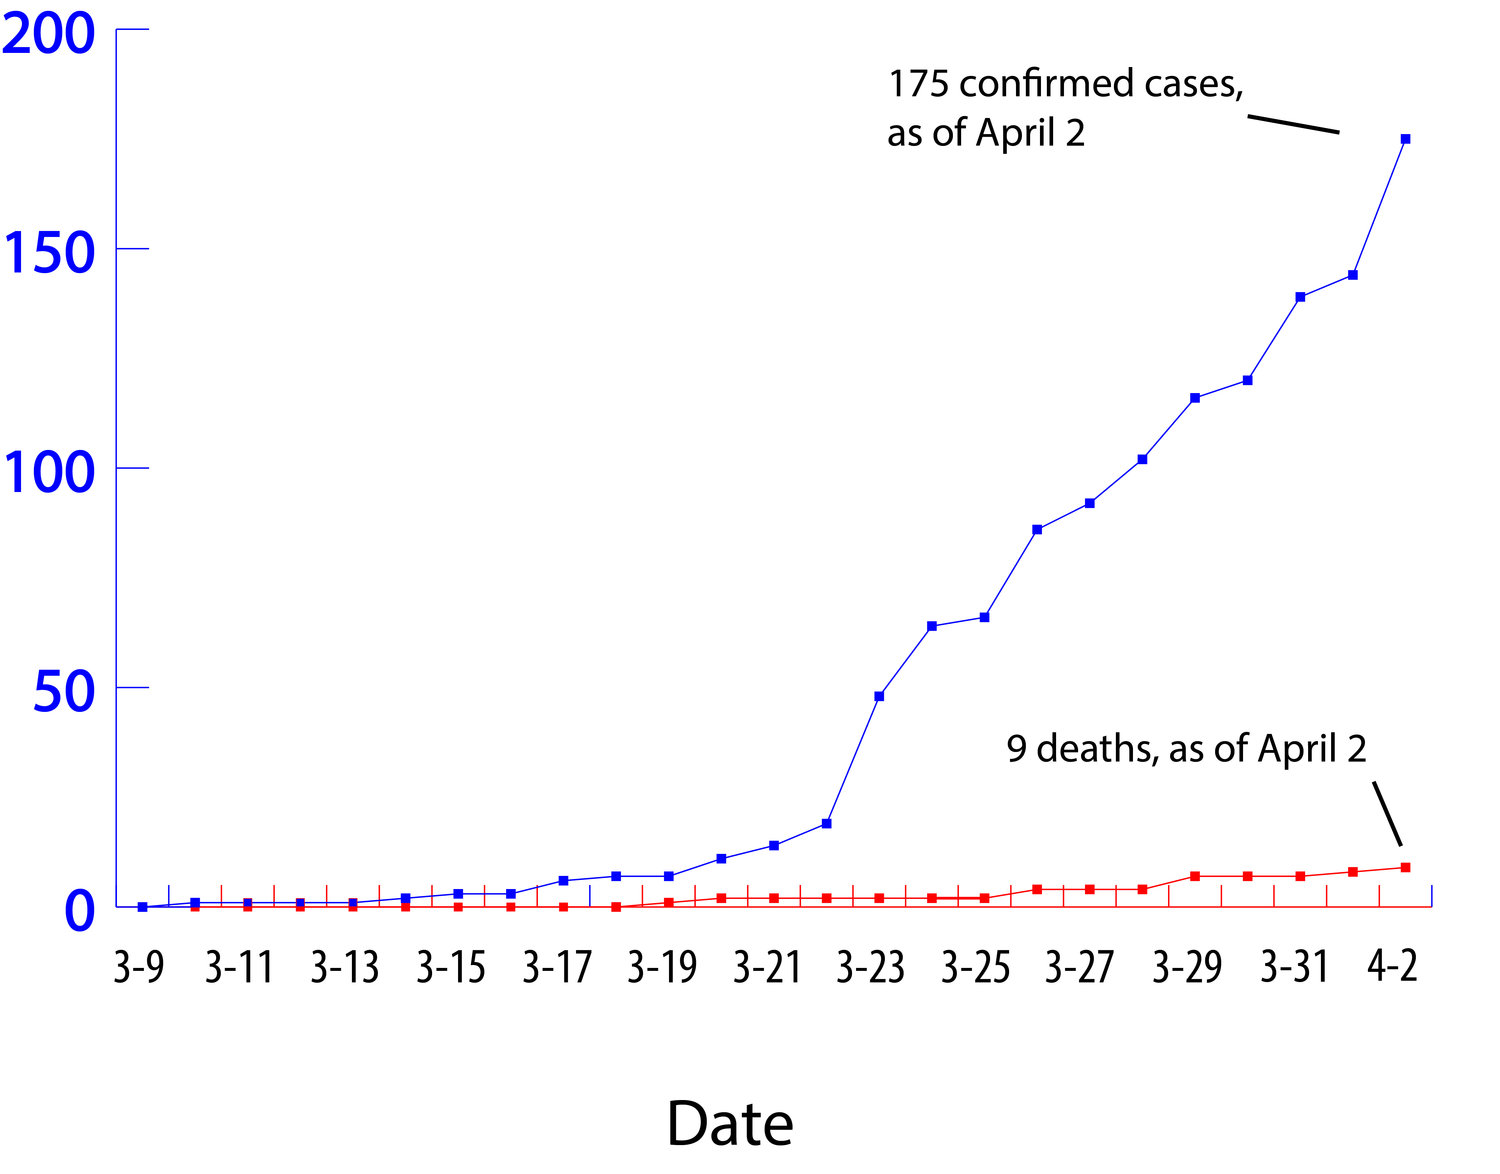 Confirmed COVID-19 cases and deaths in Whatcom County. Source: Whatcom County Health Department.